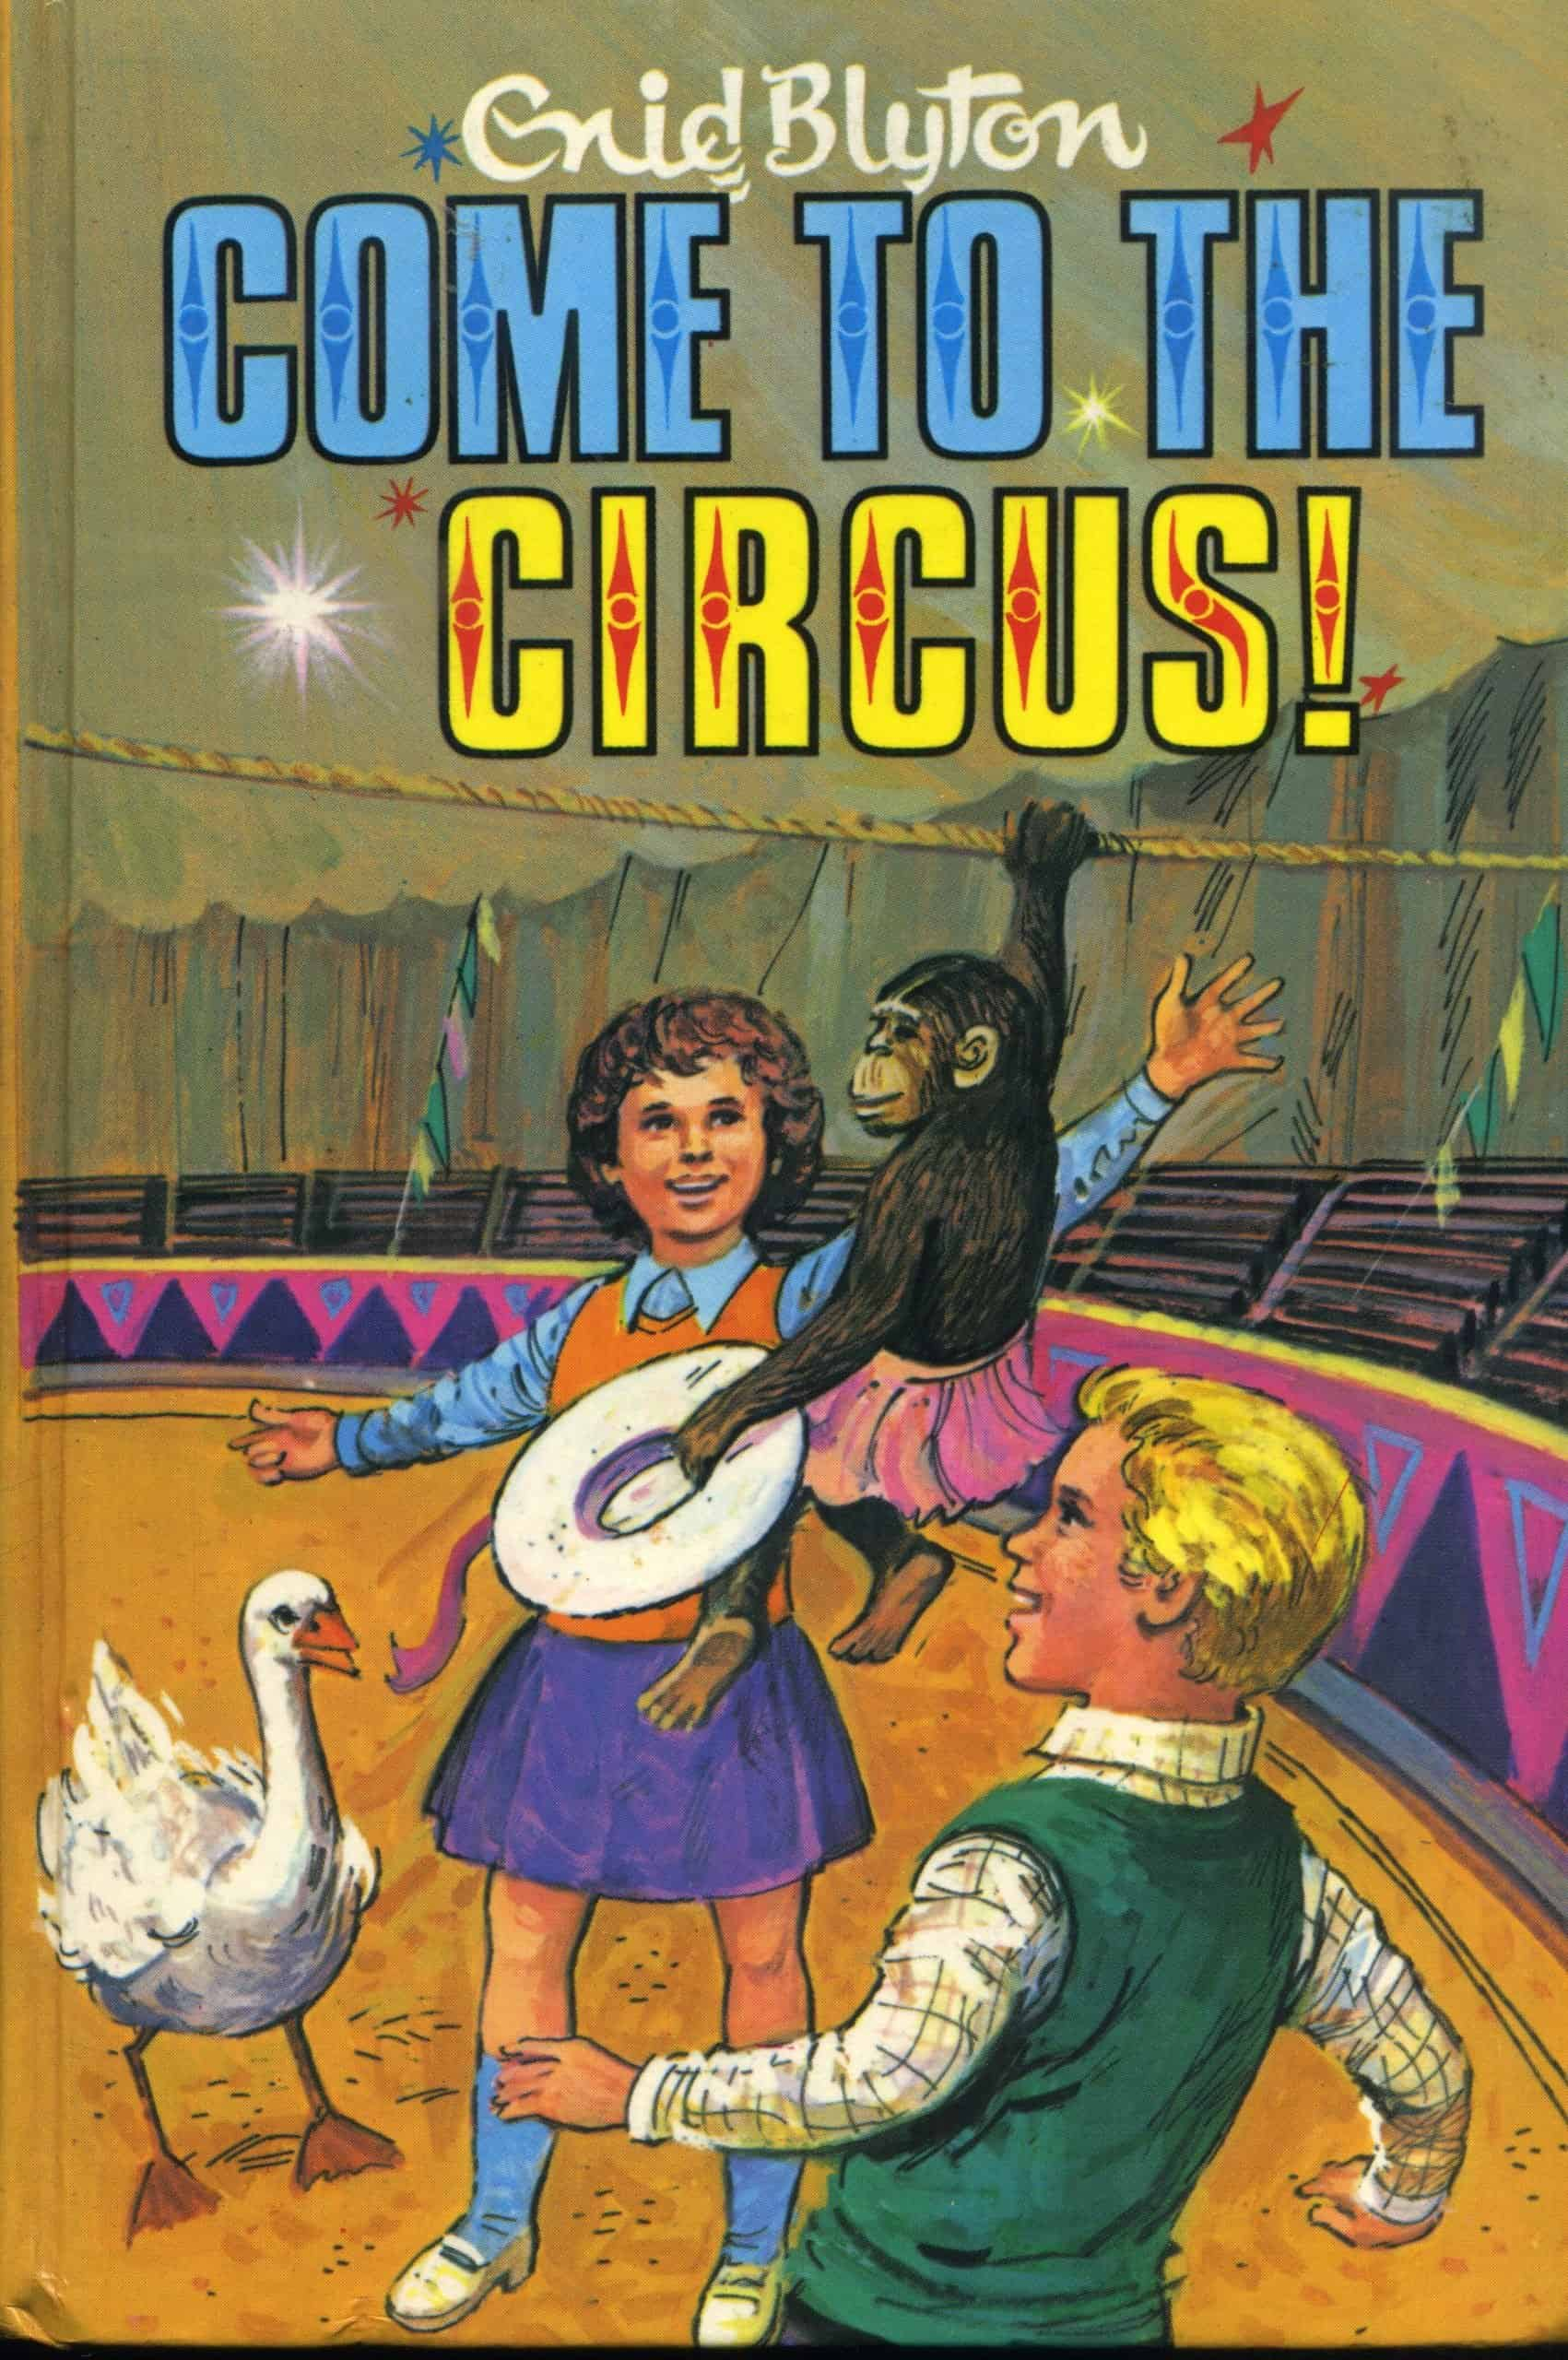 Come to the circus enid blyton book